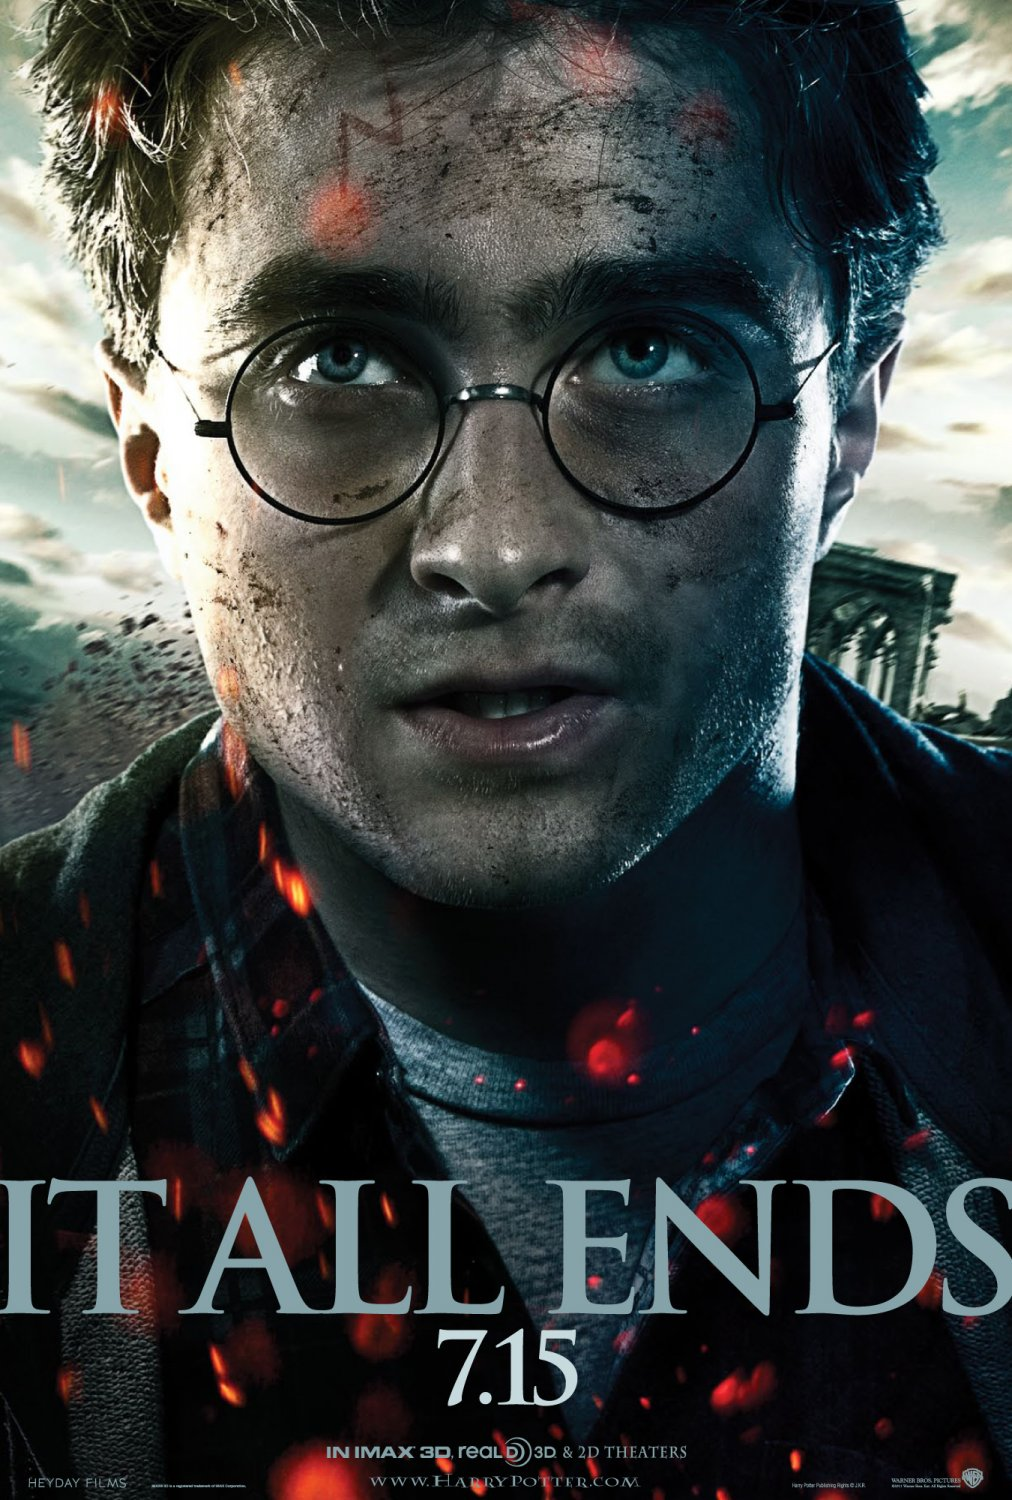 harry-potter-and-the-deathly-hallows-part-two-lauren-blog.jpg